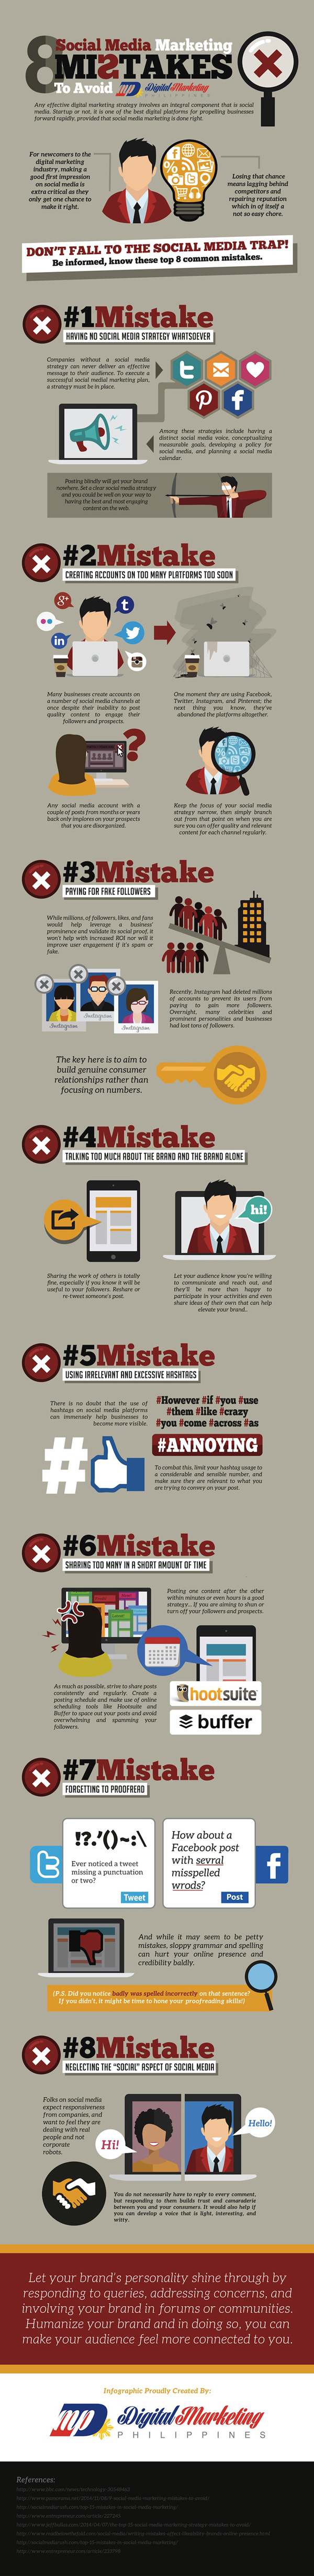 8-Social-Media-Marketing-Mistakes-to-Avoid-Infographic